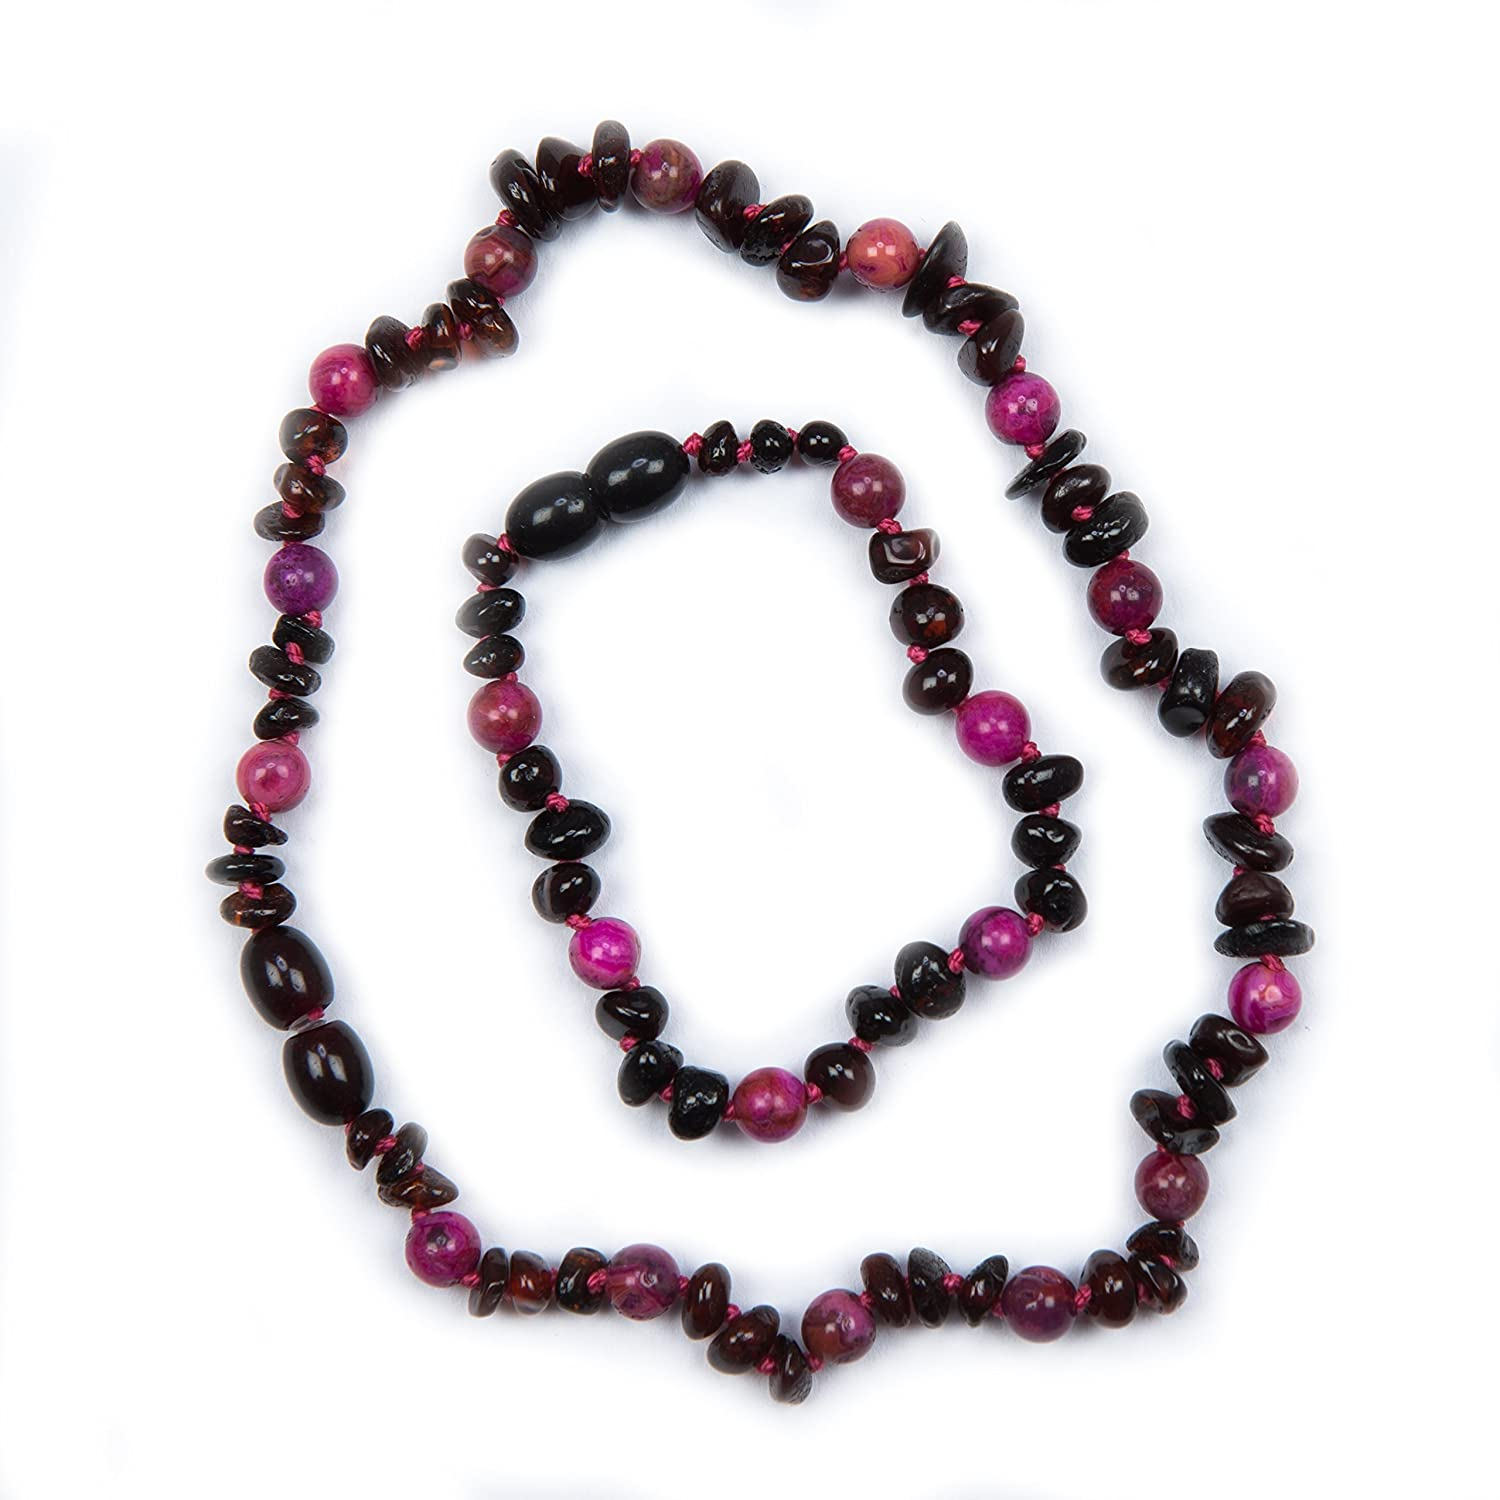 100% Genuine Cherry and Rose Agate Necklace and Anklet Set. Variety Of Anklet Sizes. Free Delivery. Money Back Guarantee Baby J' s cherry rose set